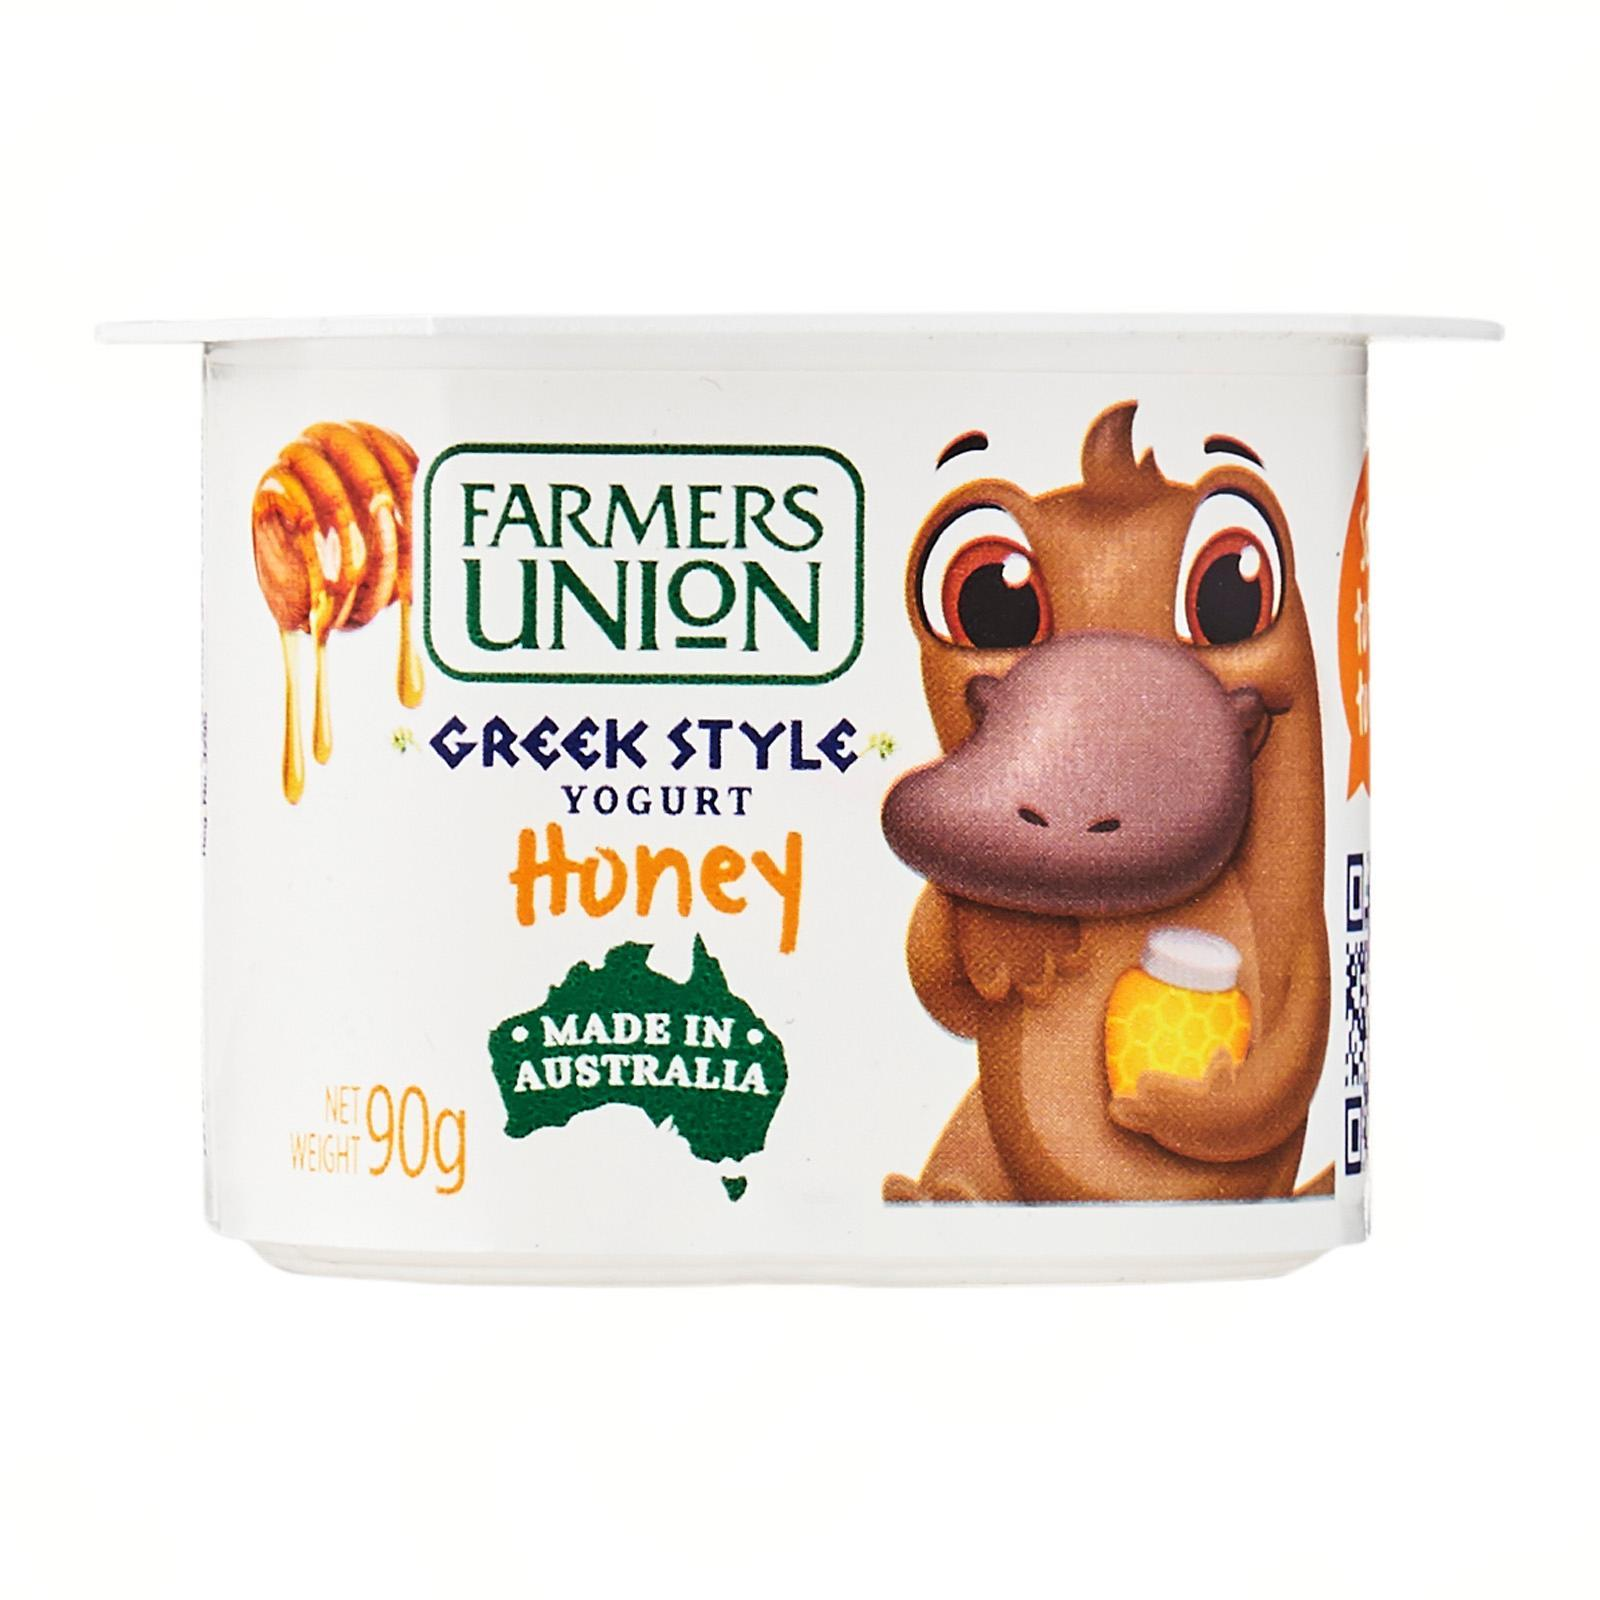 FARMERS UNION Greek Style Yogurt Honey 90g